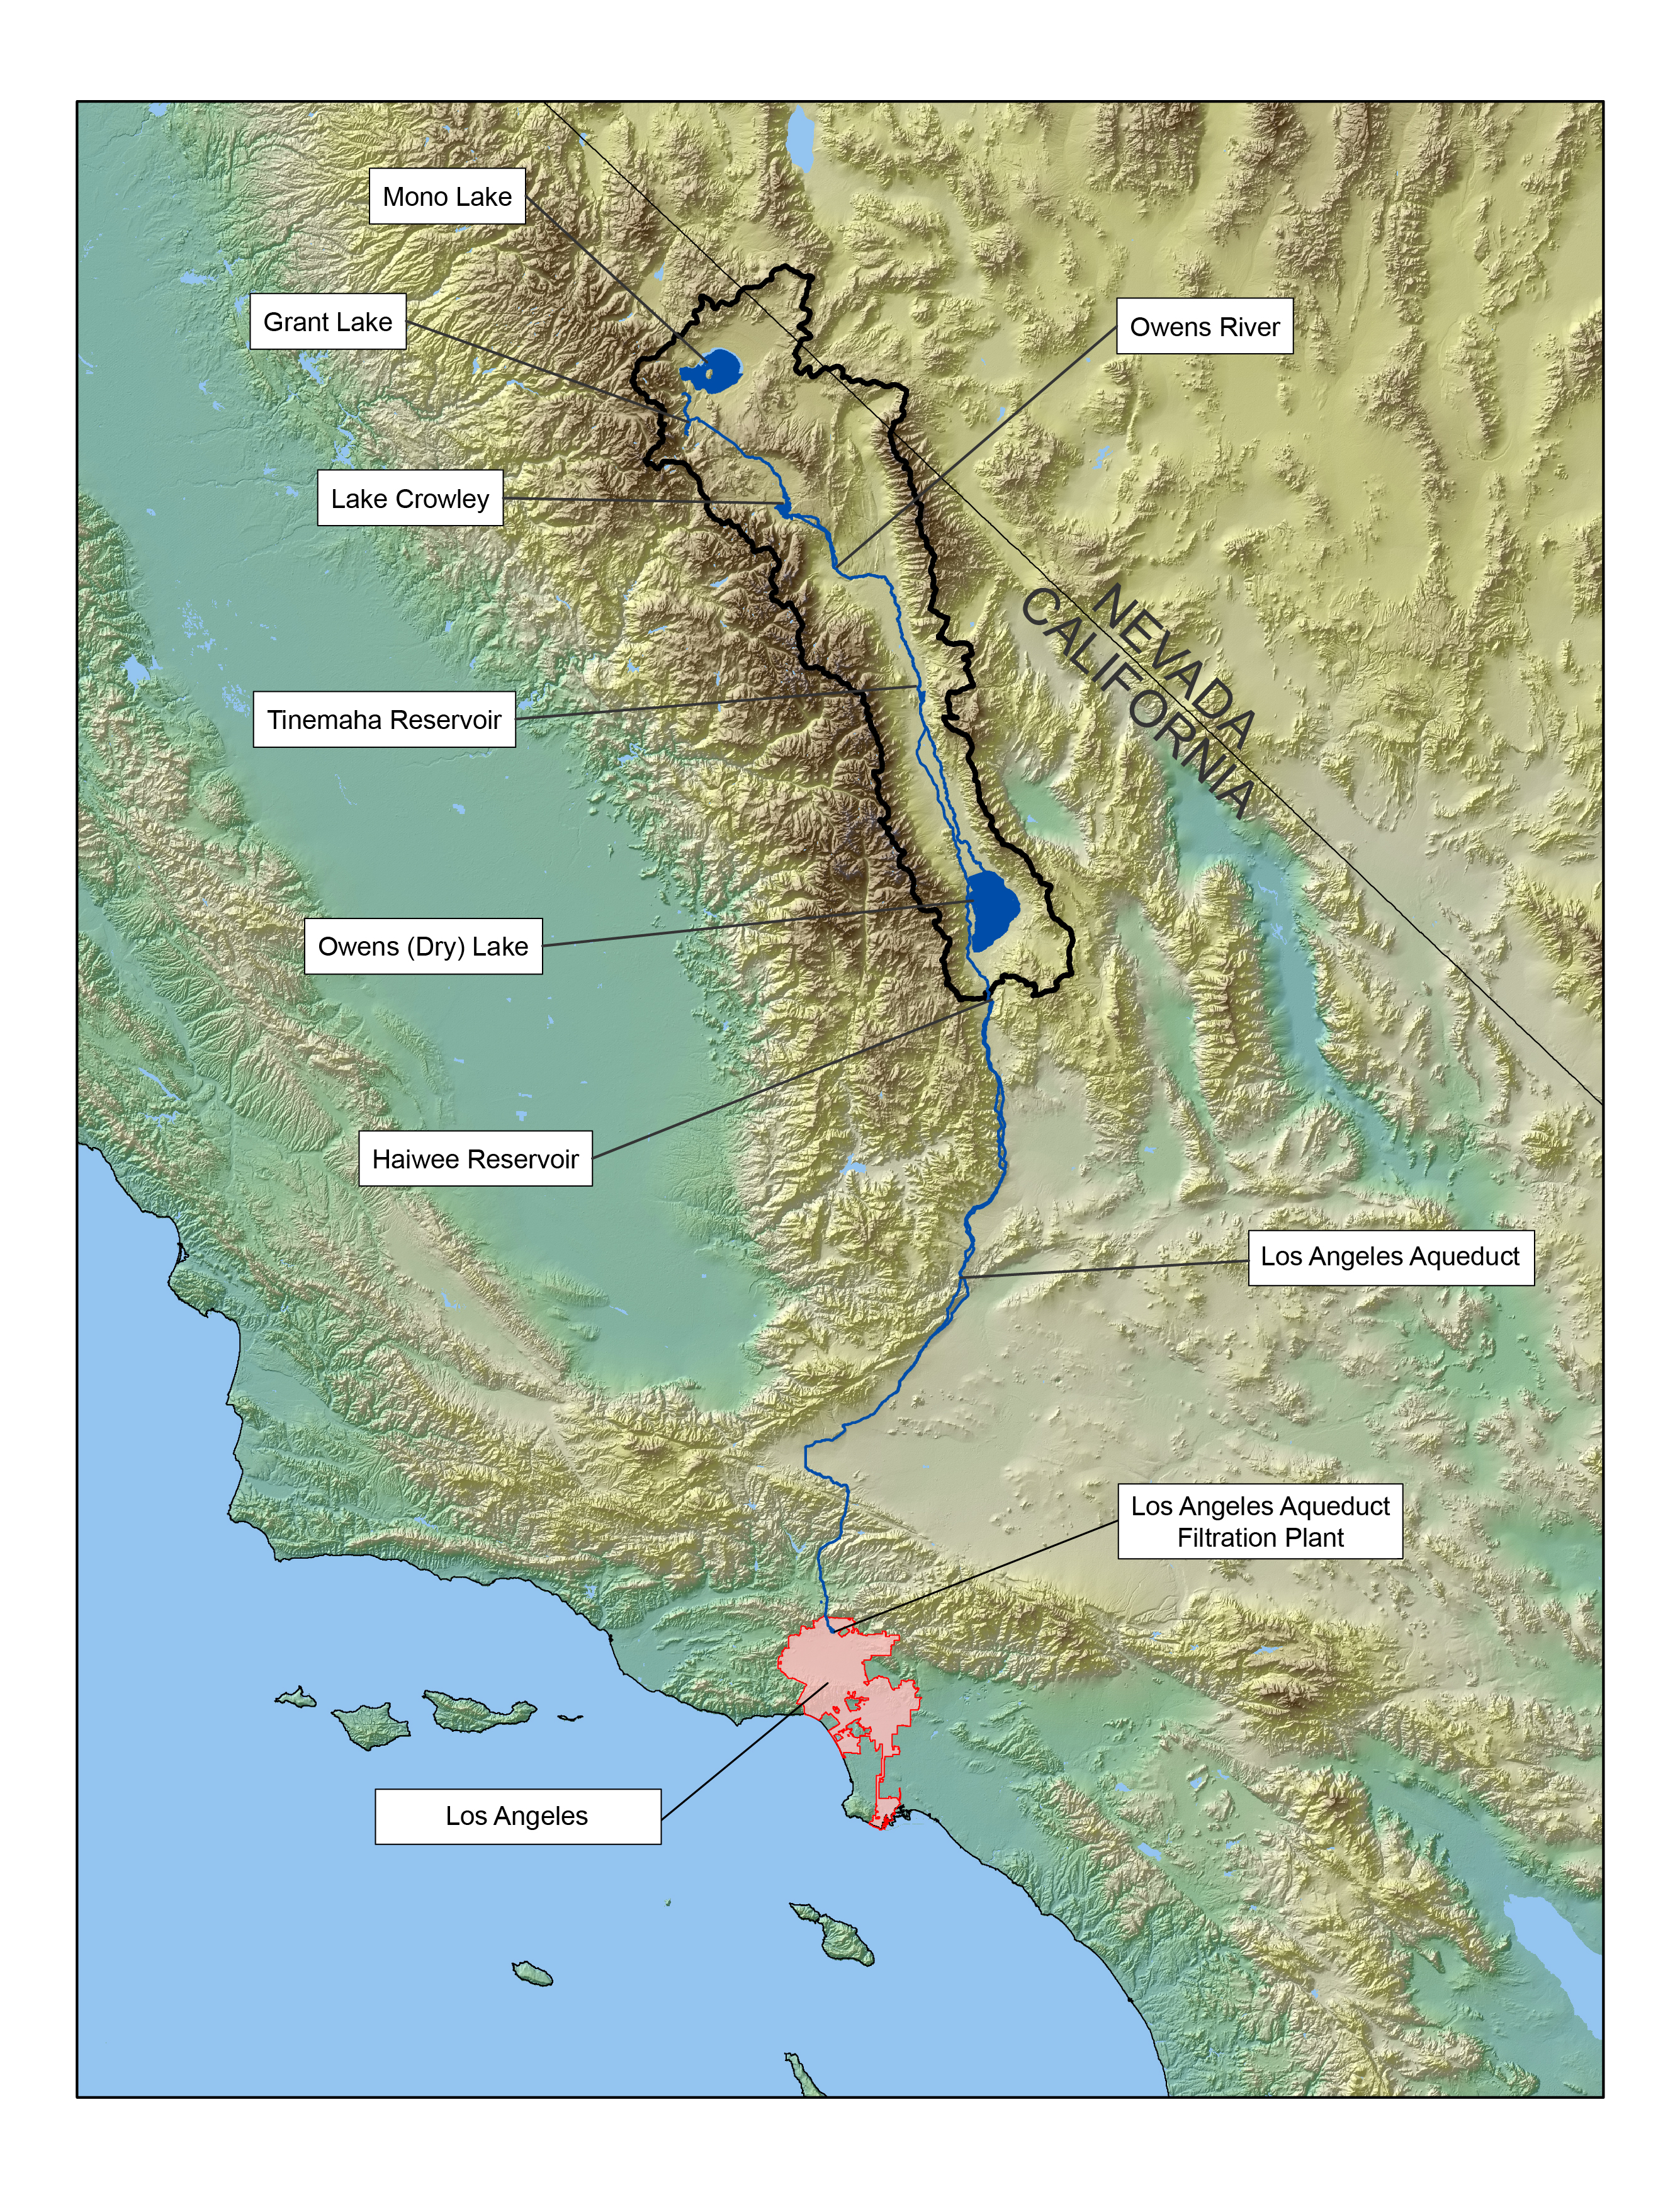 Tetra Tech Has Been Working With Ladwp To Yze The Impacts Of Climate Change On Water Supplies From The Eastern Sierra Nevada And To Evaluate Adaptation